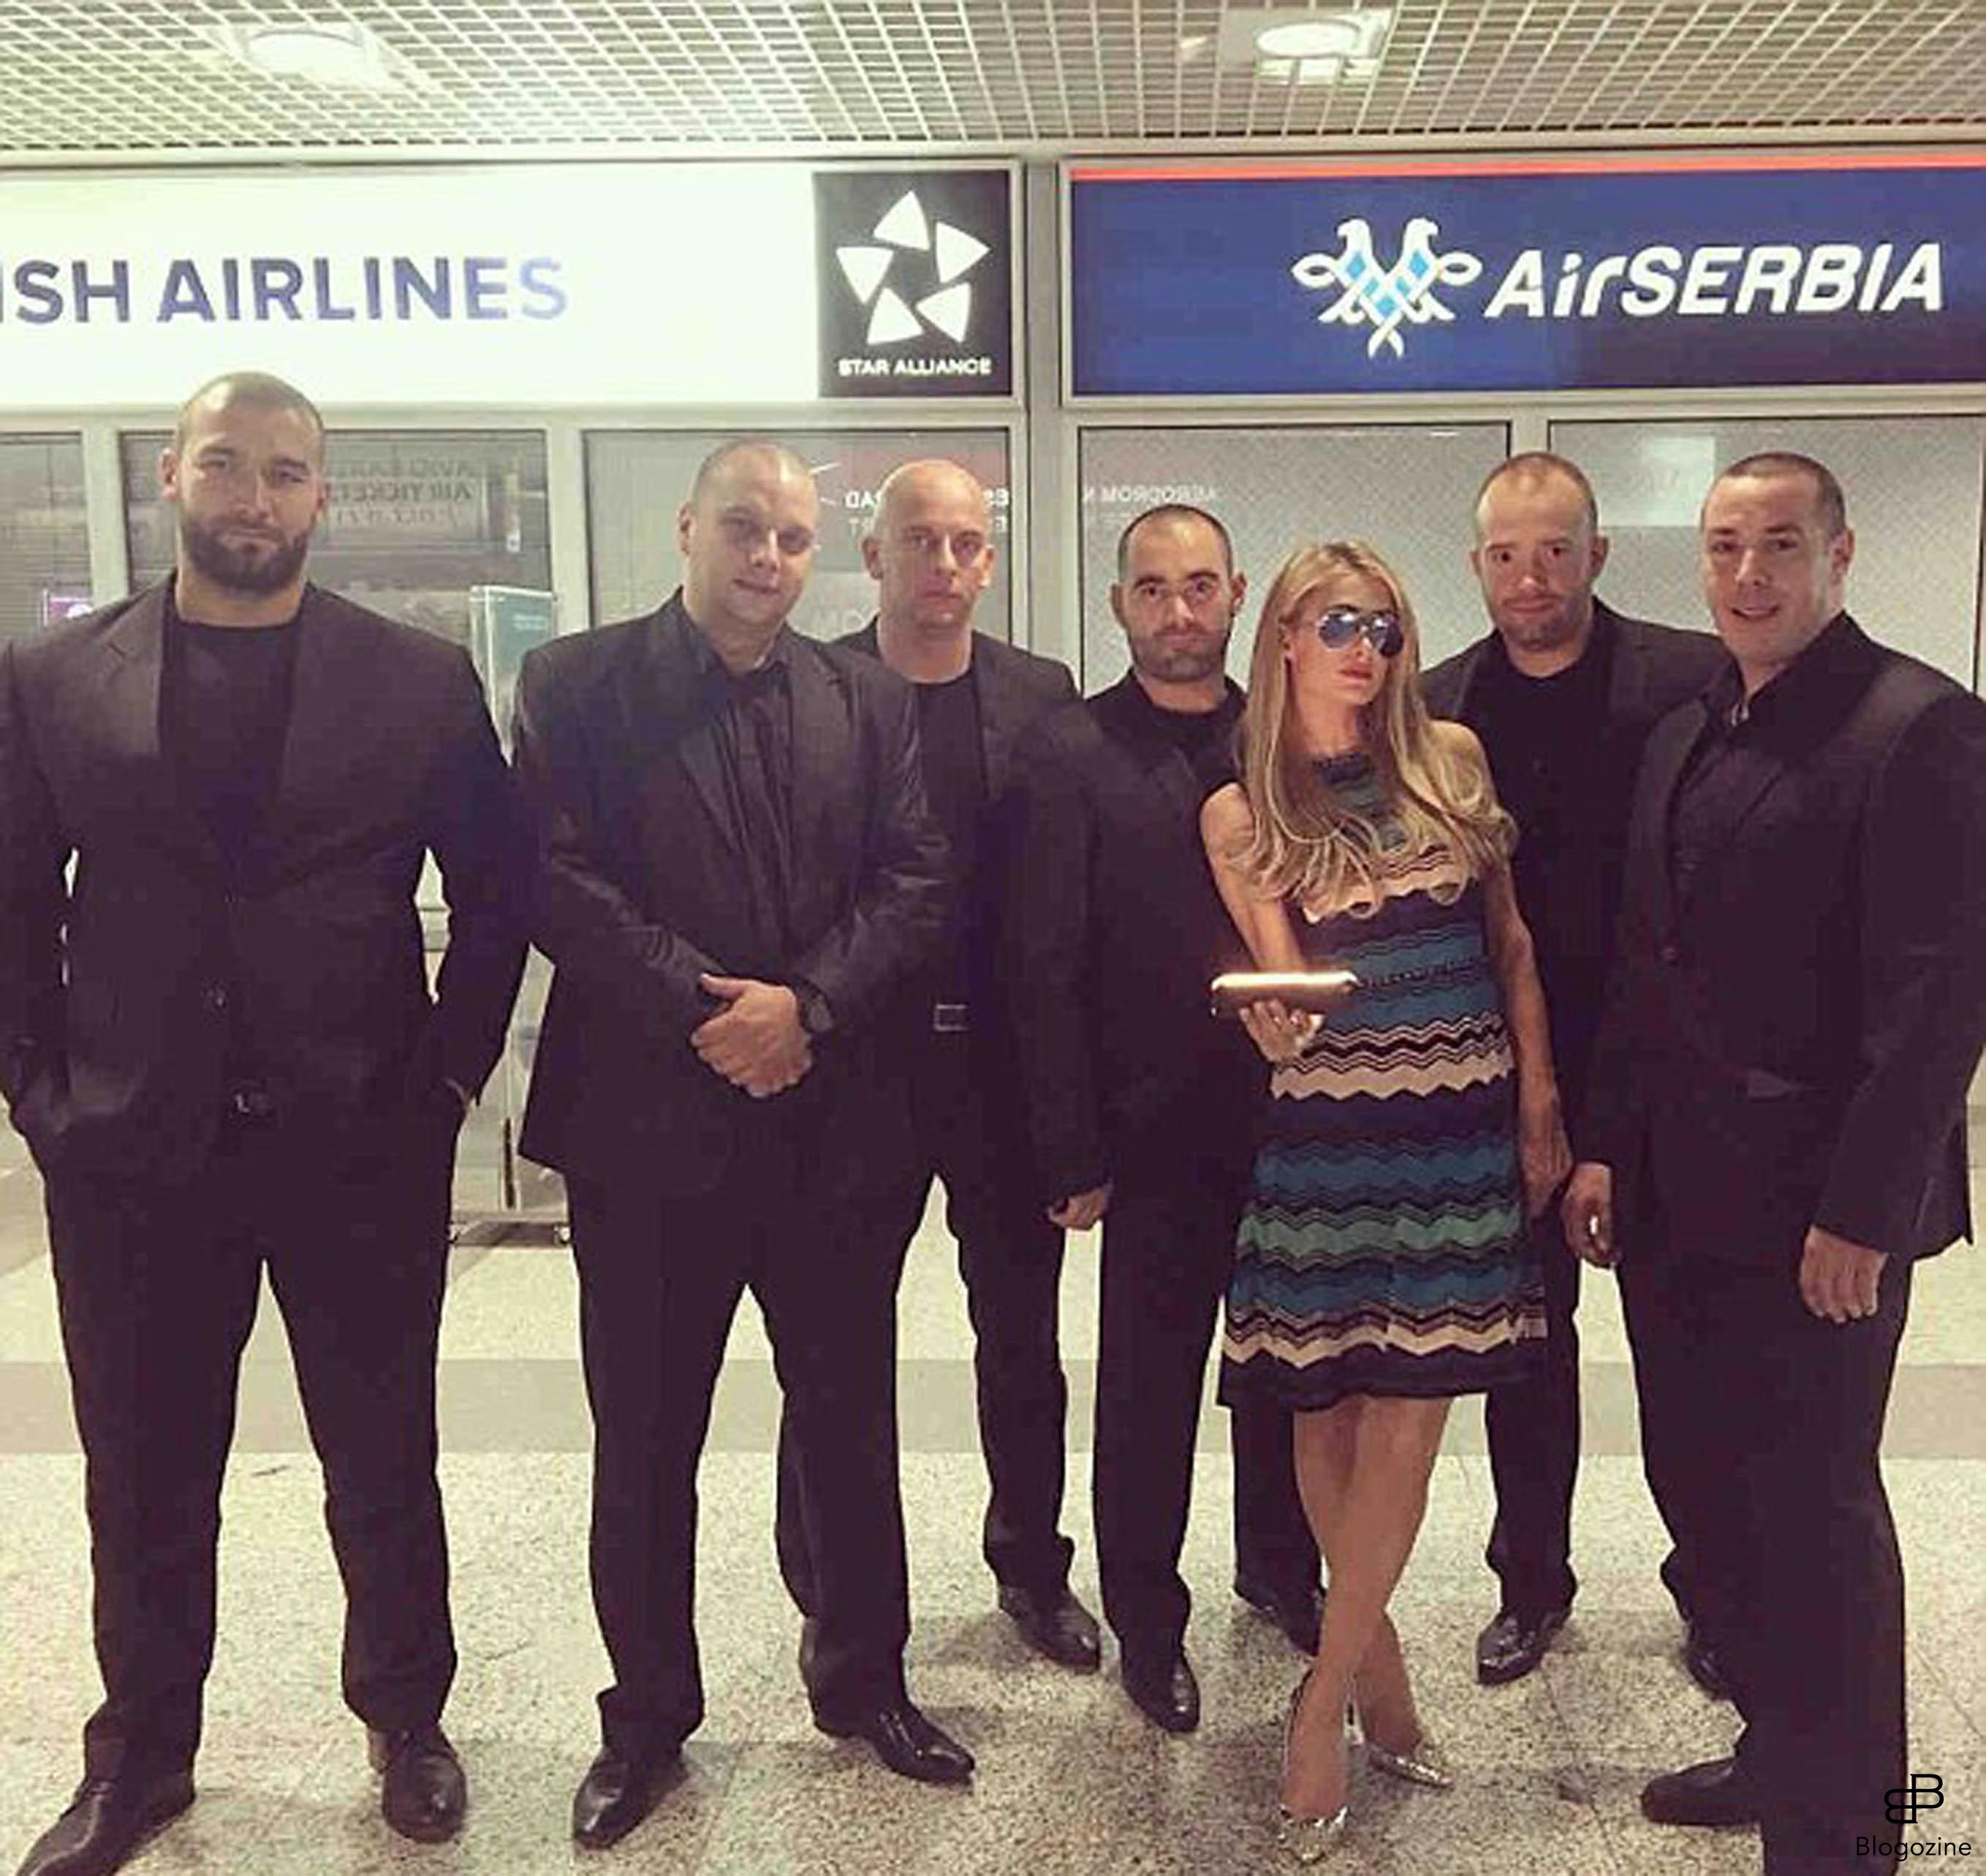 6222988 29-9-2016 Celebrity Selfies Pictured: Paris Hilton and bodyguards PLANET PHOTOS www.planetphotos.co.uk info@planetphotos.co.uk +44 (0)20 8883 1438 DISTR. STELLA PICTURES